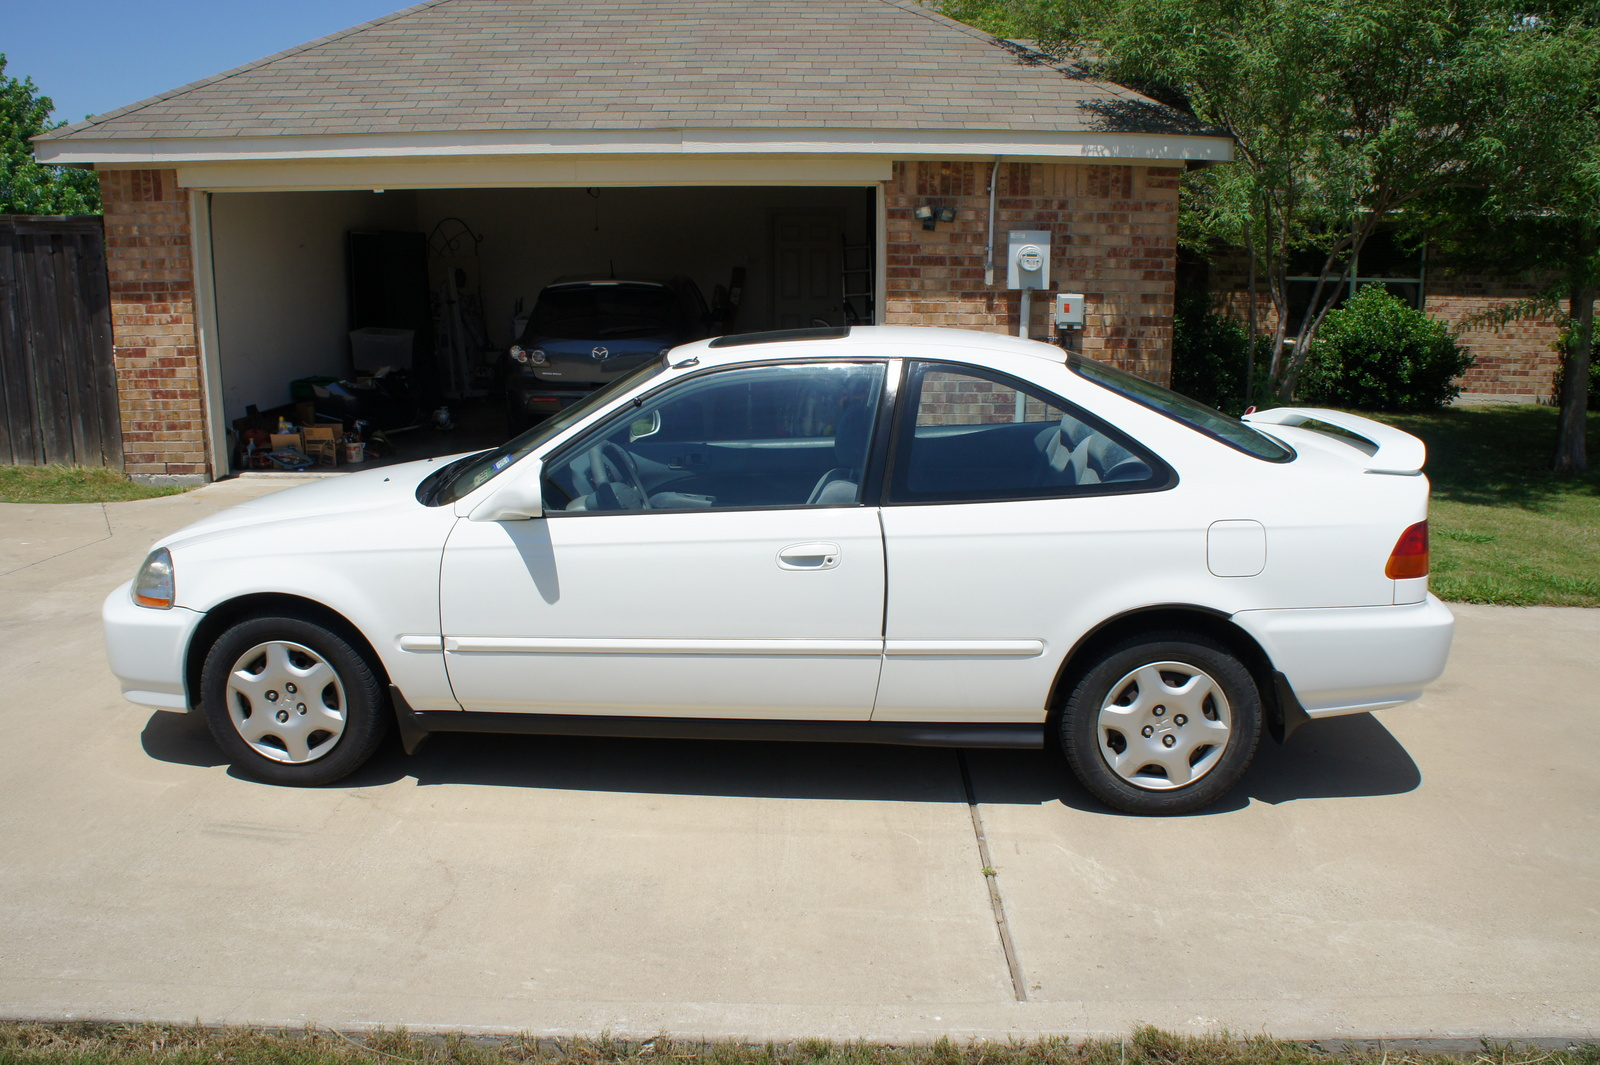 1998 honda civic ex fuse box diagram leisure battery wiring nissan sentra fuel injector problems free engine